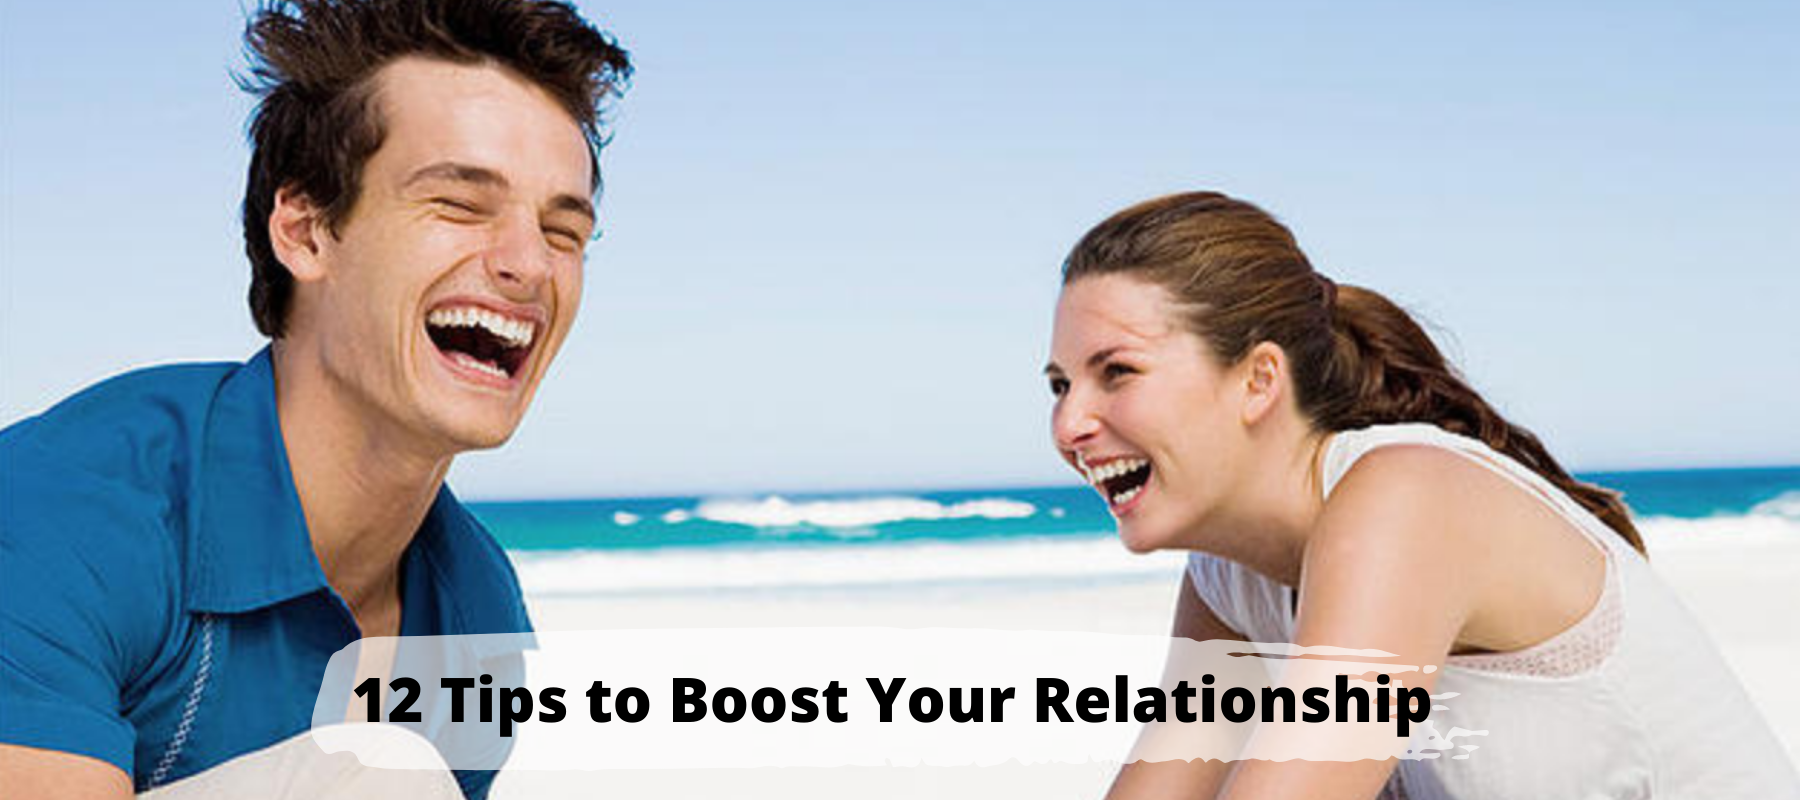 12-tips-to-boost-your-relationship